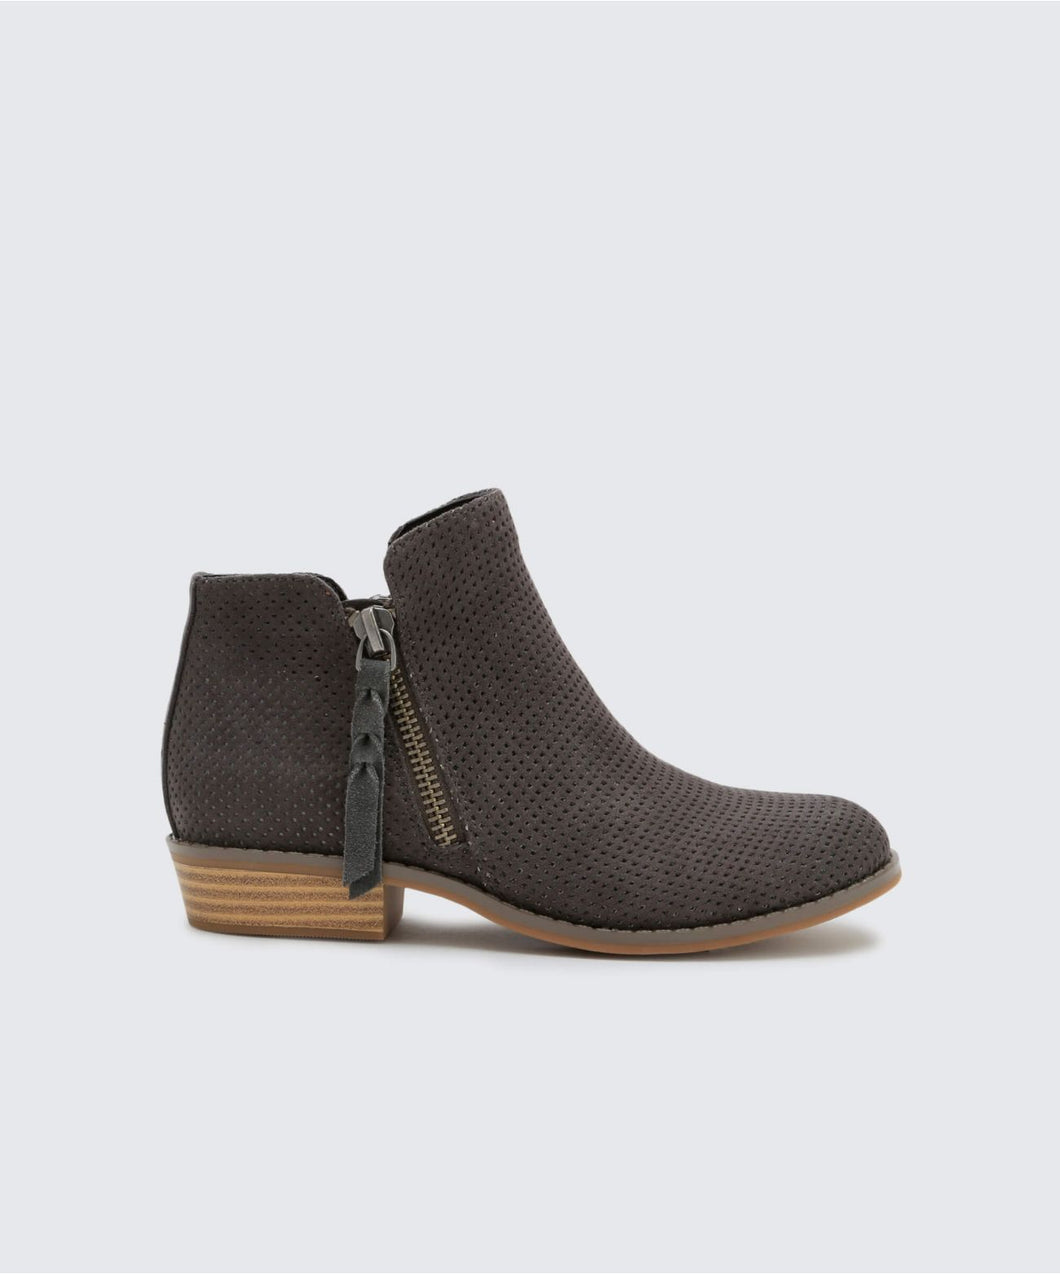 SELA BOOTIES IN SLATE -   Dolce Vita